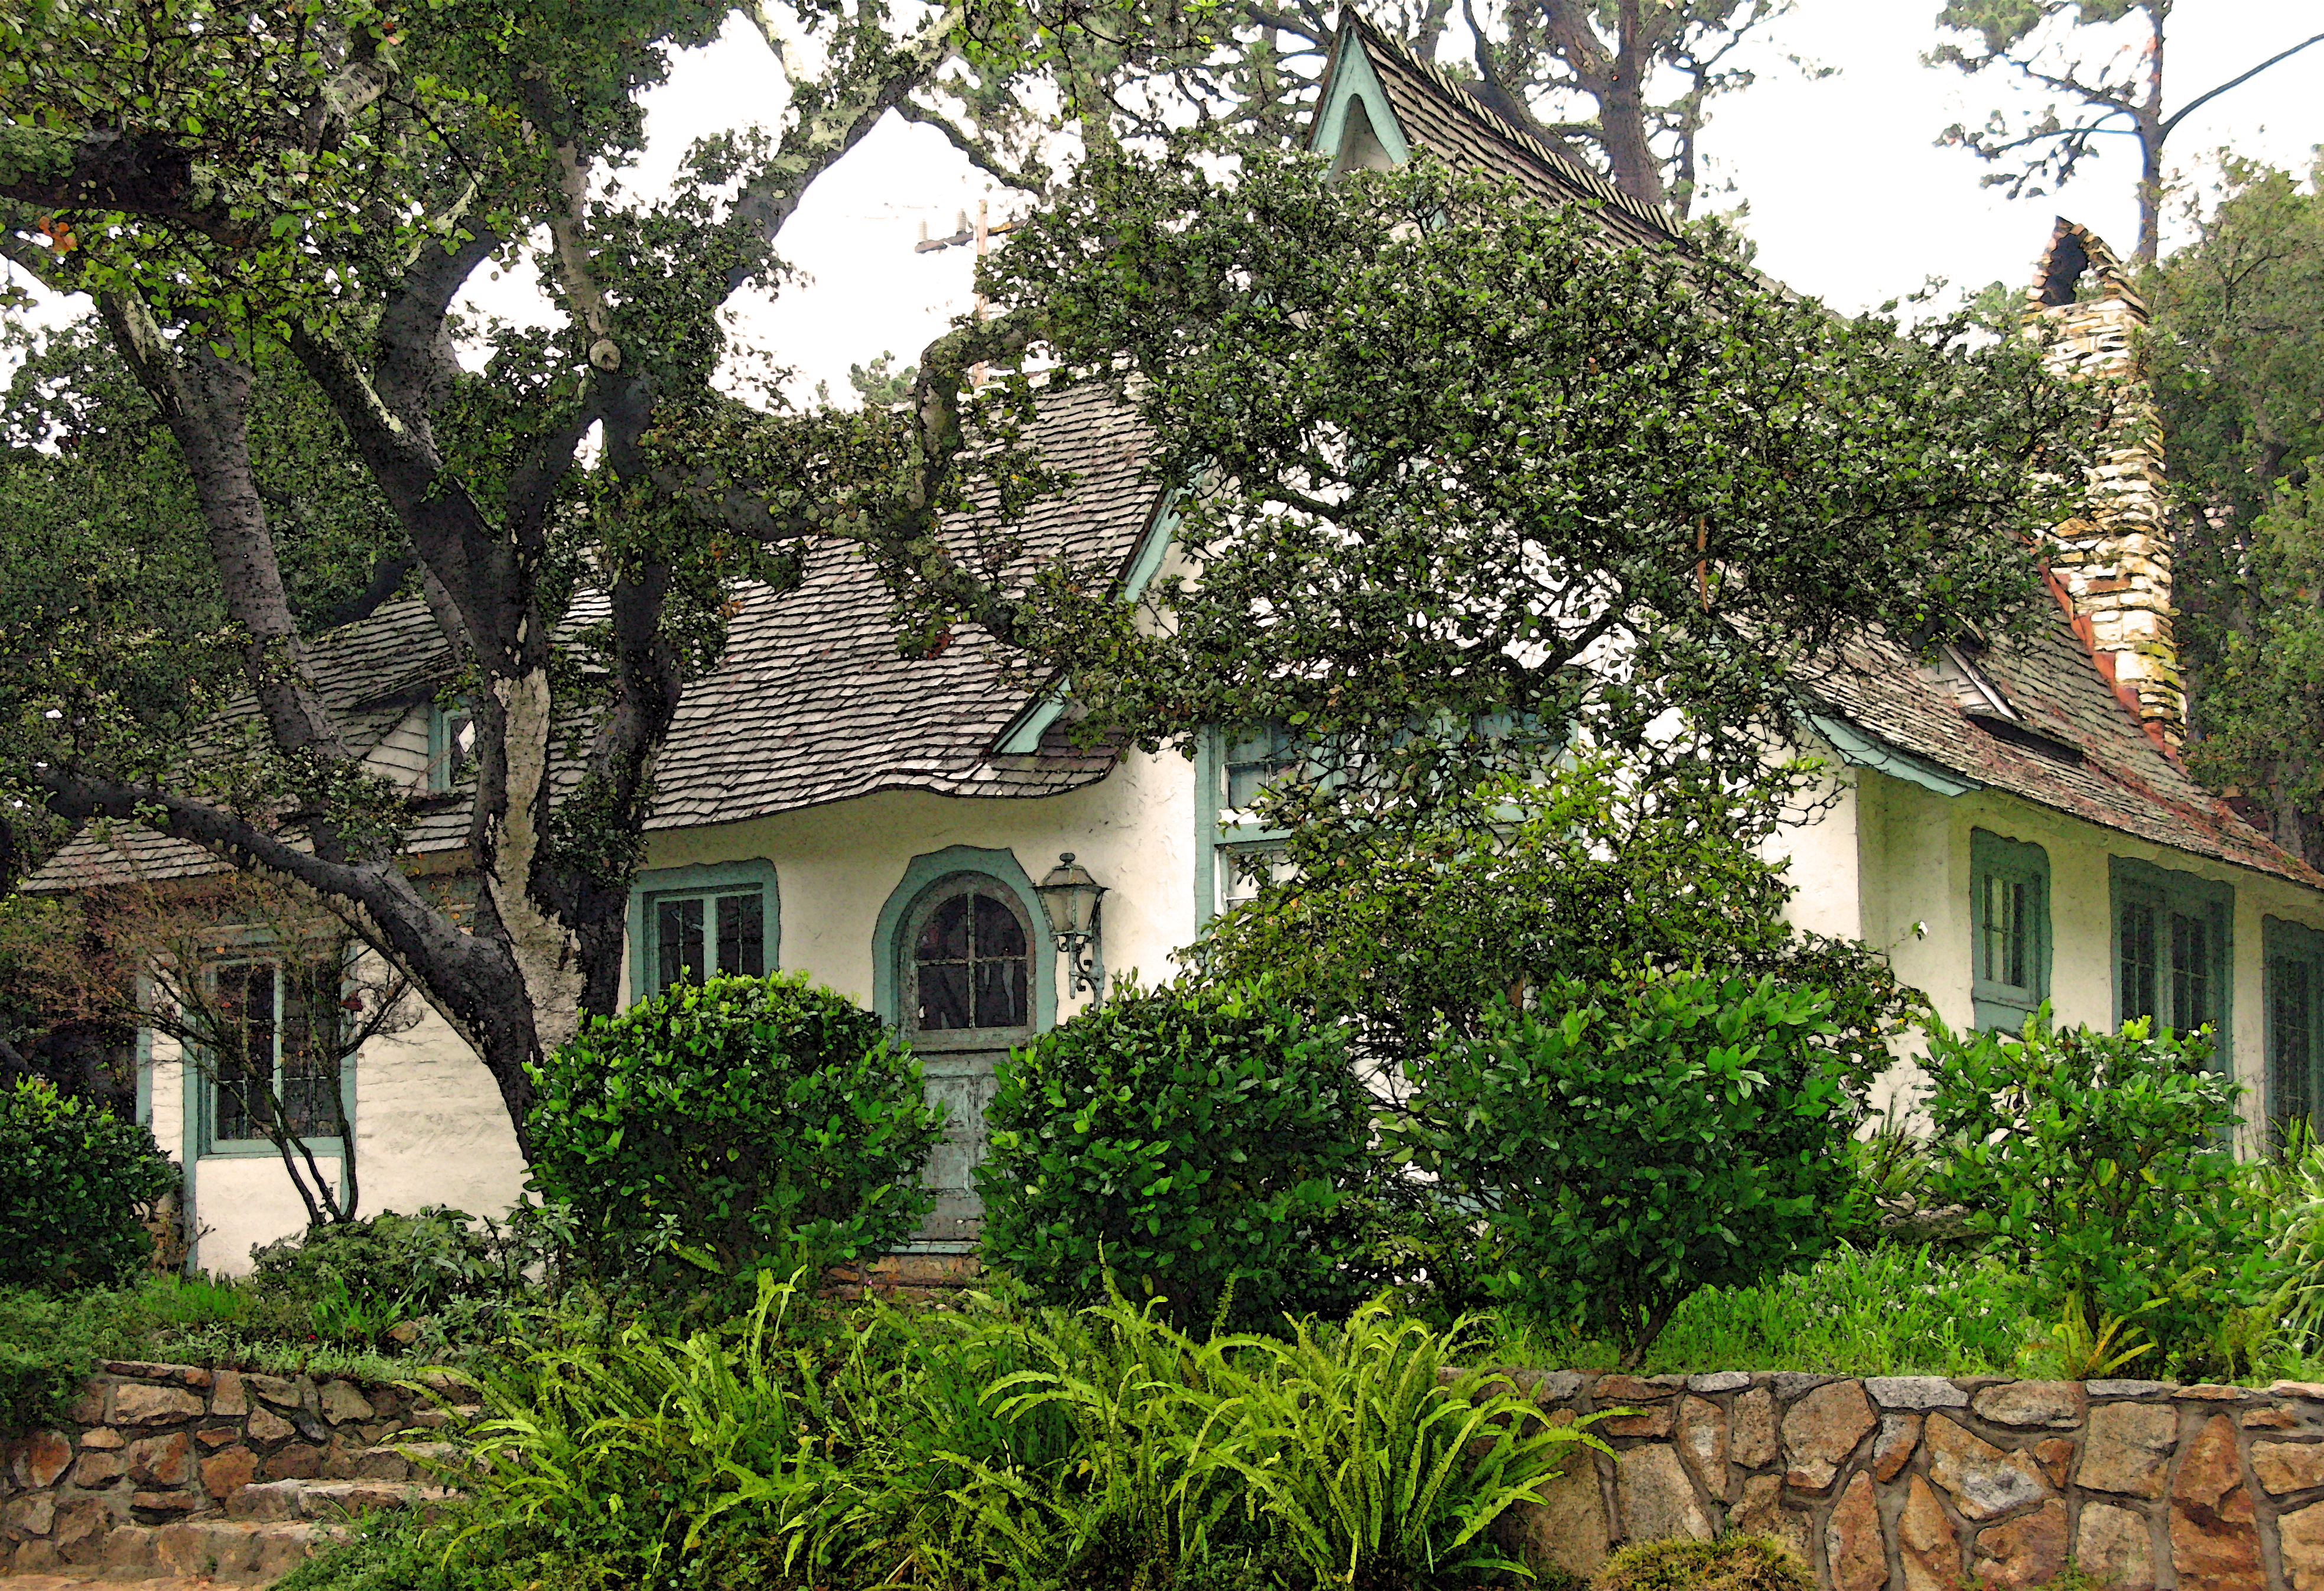 Hugh Comstock S Fairytale Cottages By The Sea Once Upon